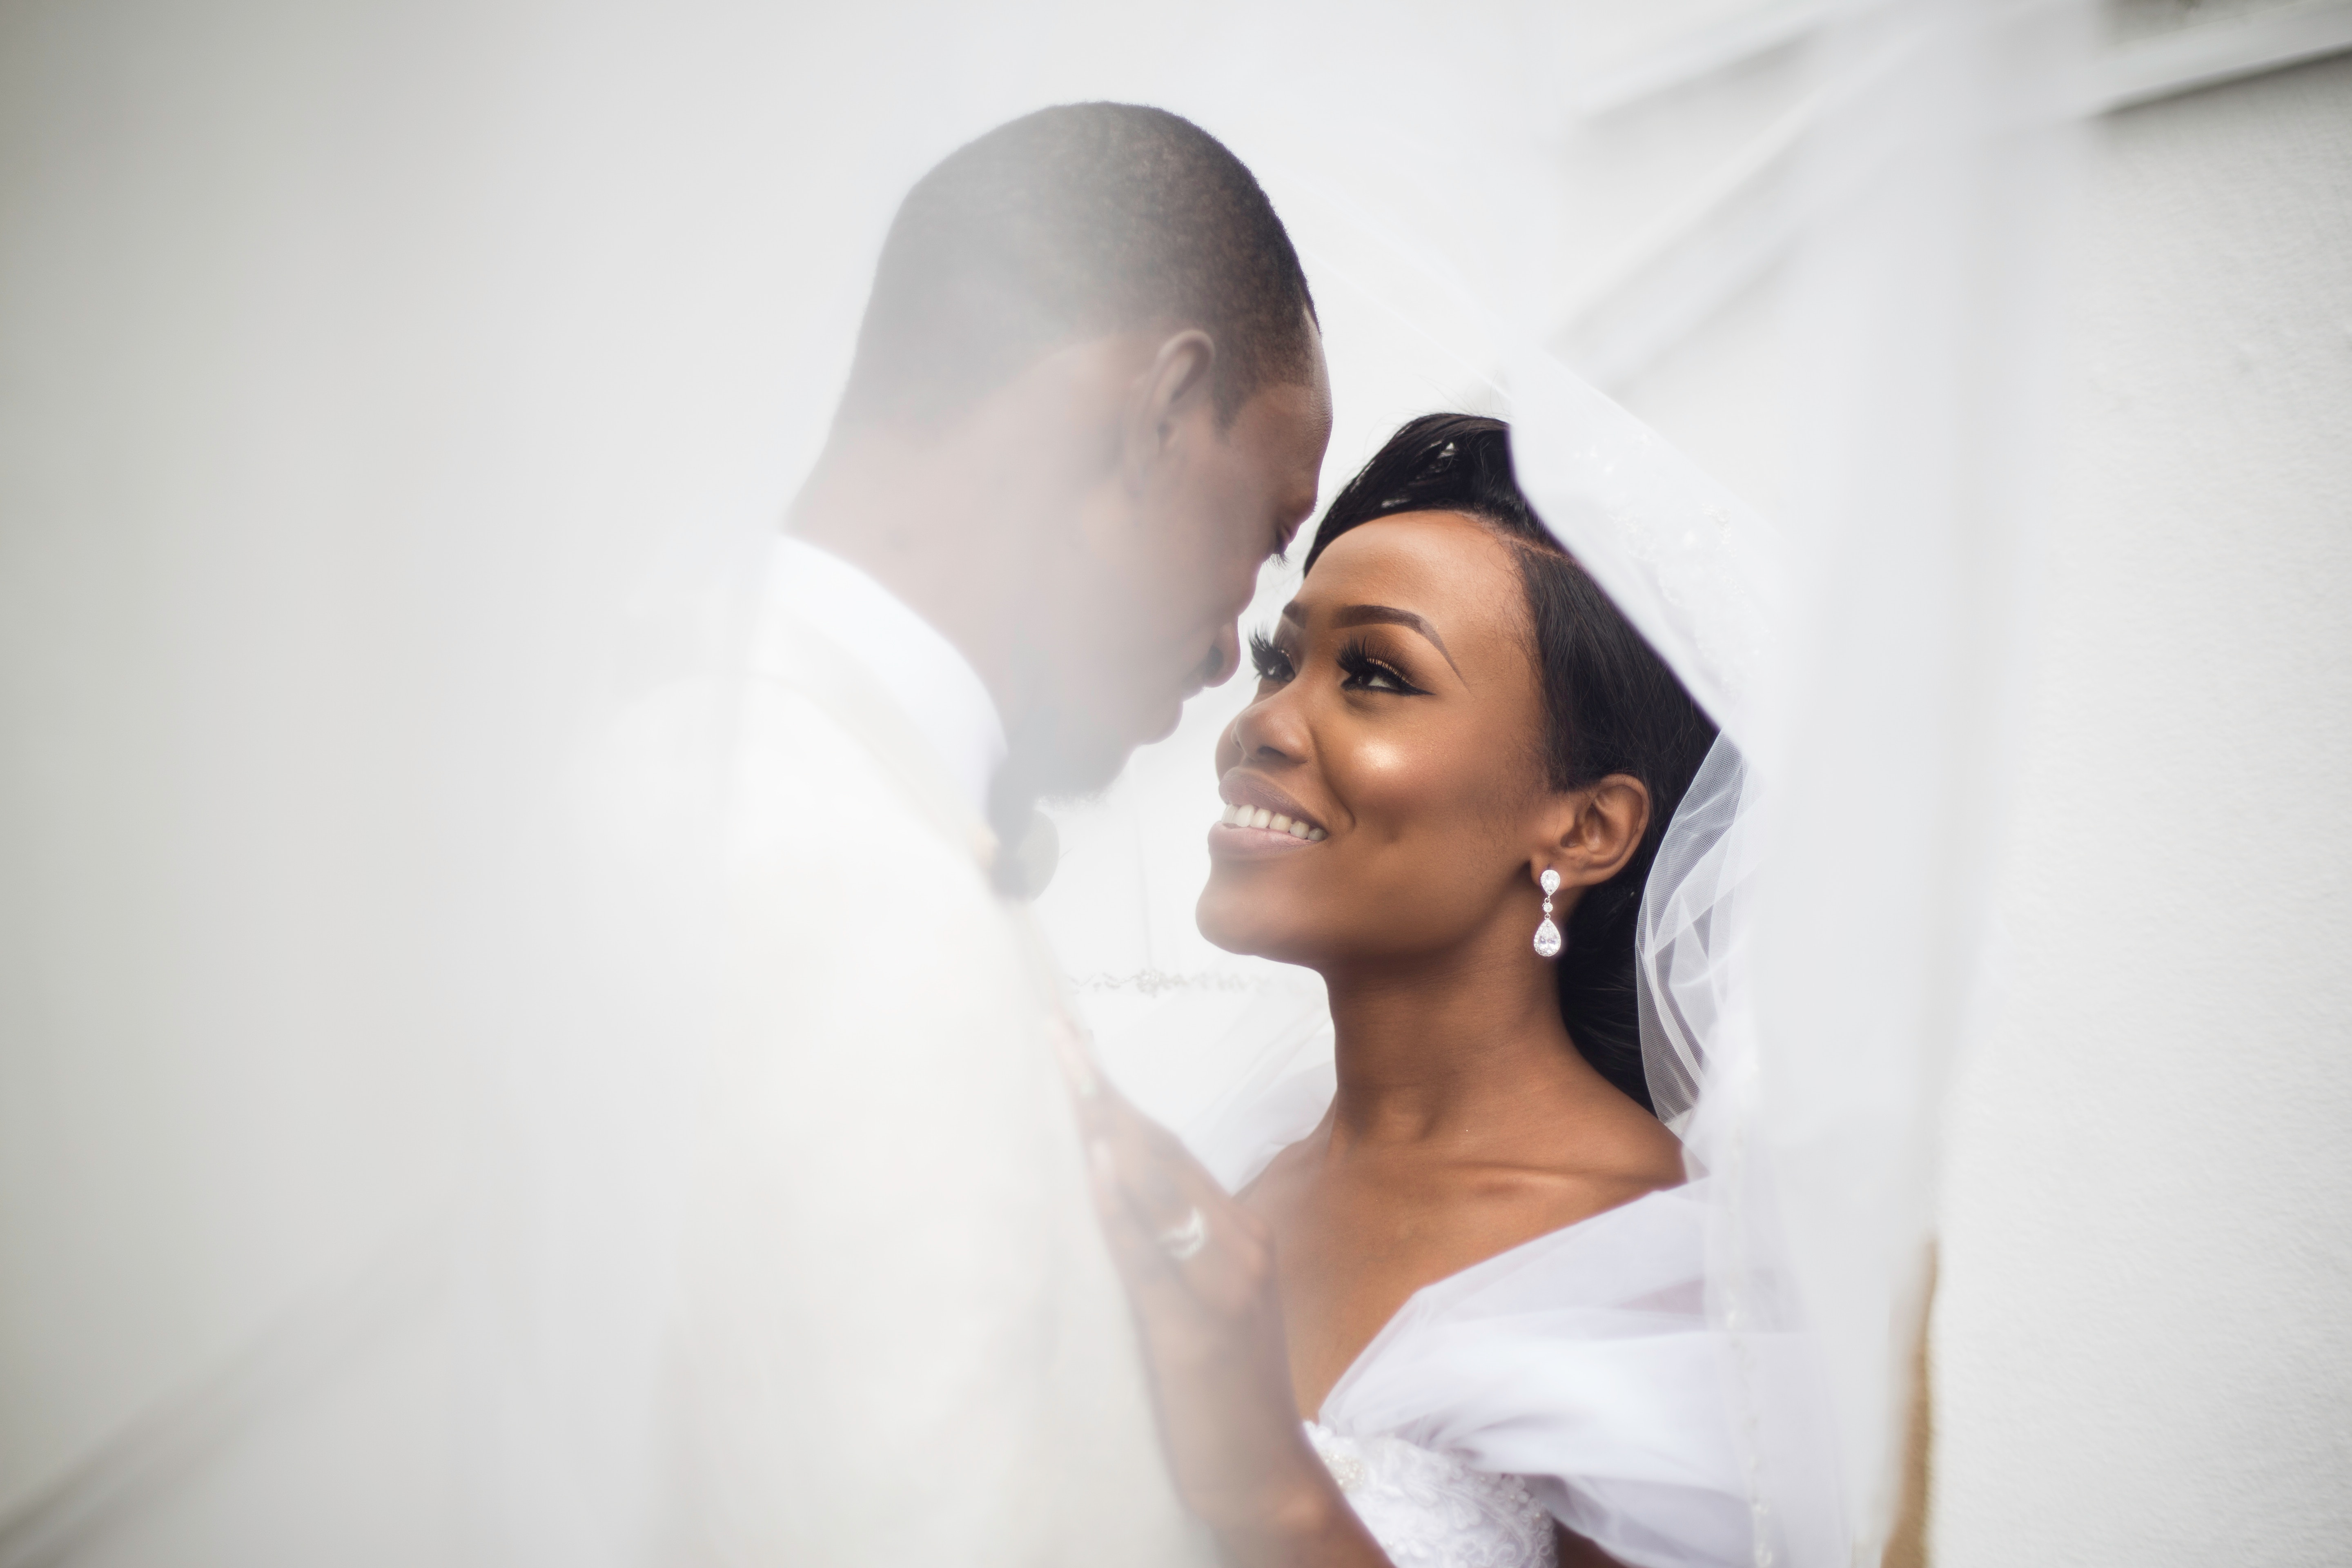 Relax and enjoy your wedding day. Image by Ifeoluwadayo Ogunderu